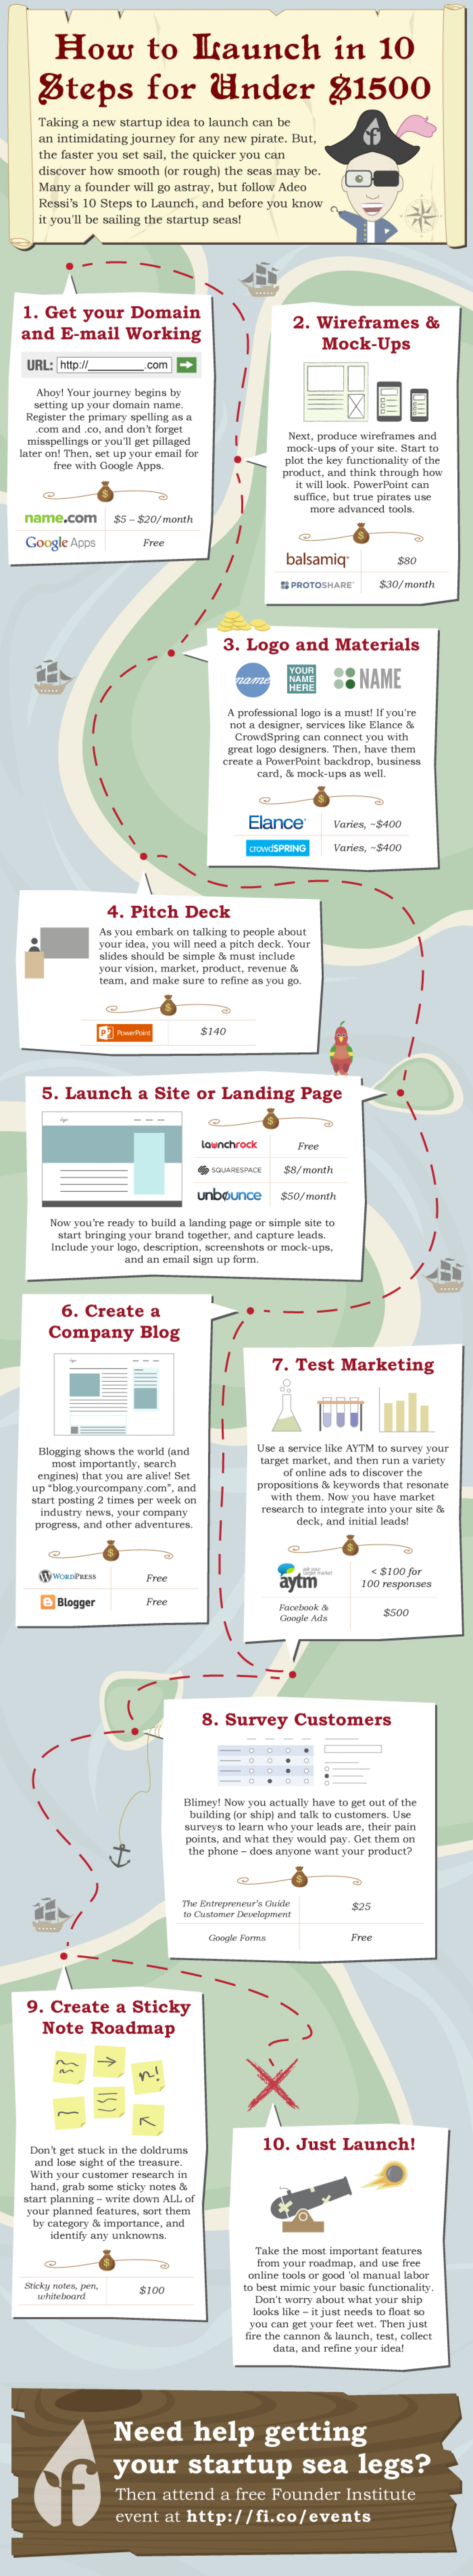 How to Launch a Company in 10 Steps for Less Than $1500 Infographic